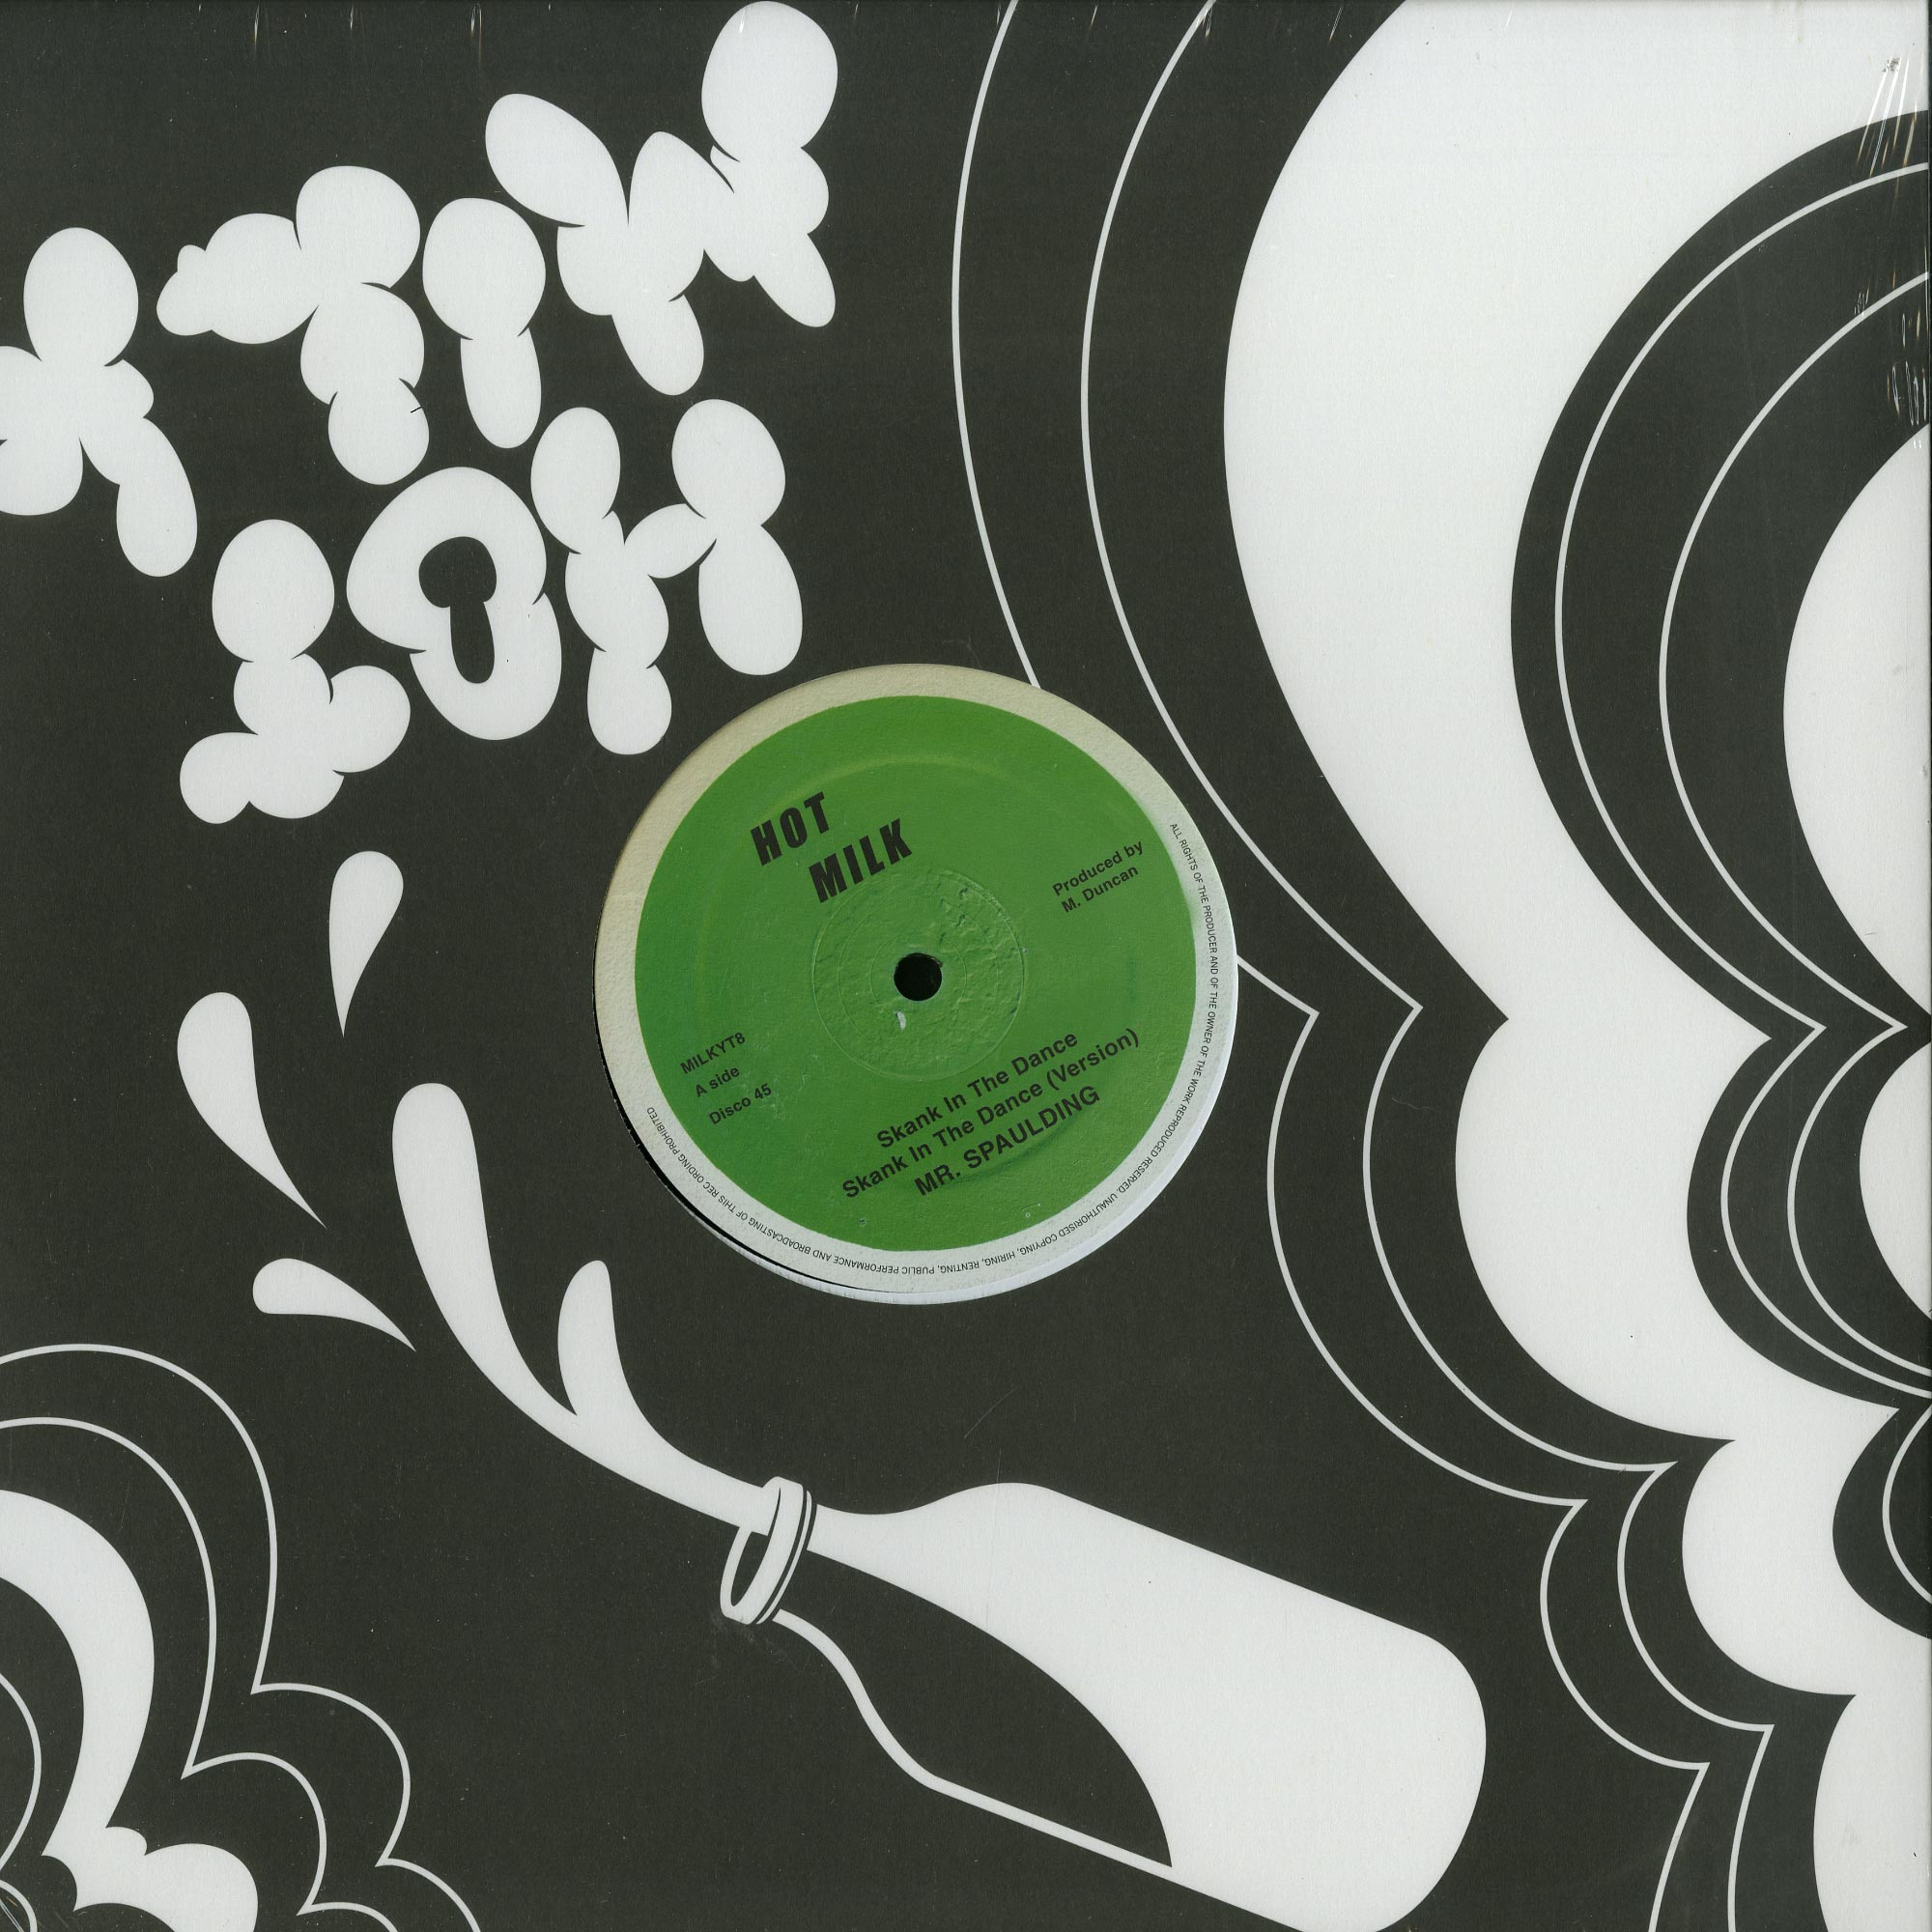 Mr. Spaulding - SHANK IN THE DANCE / COME NOW YOUTHMAN EP